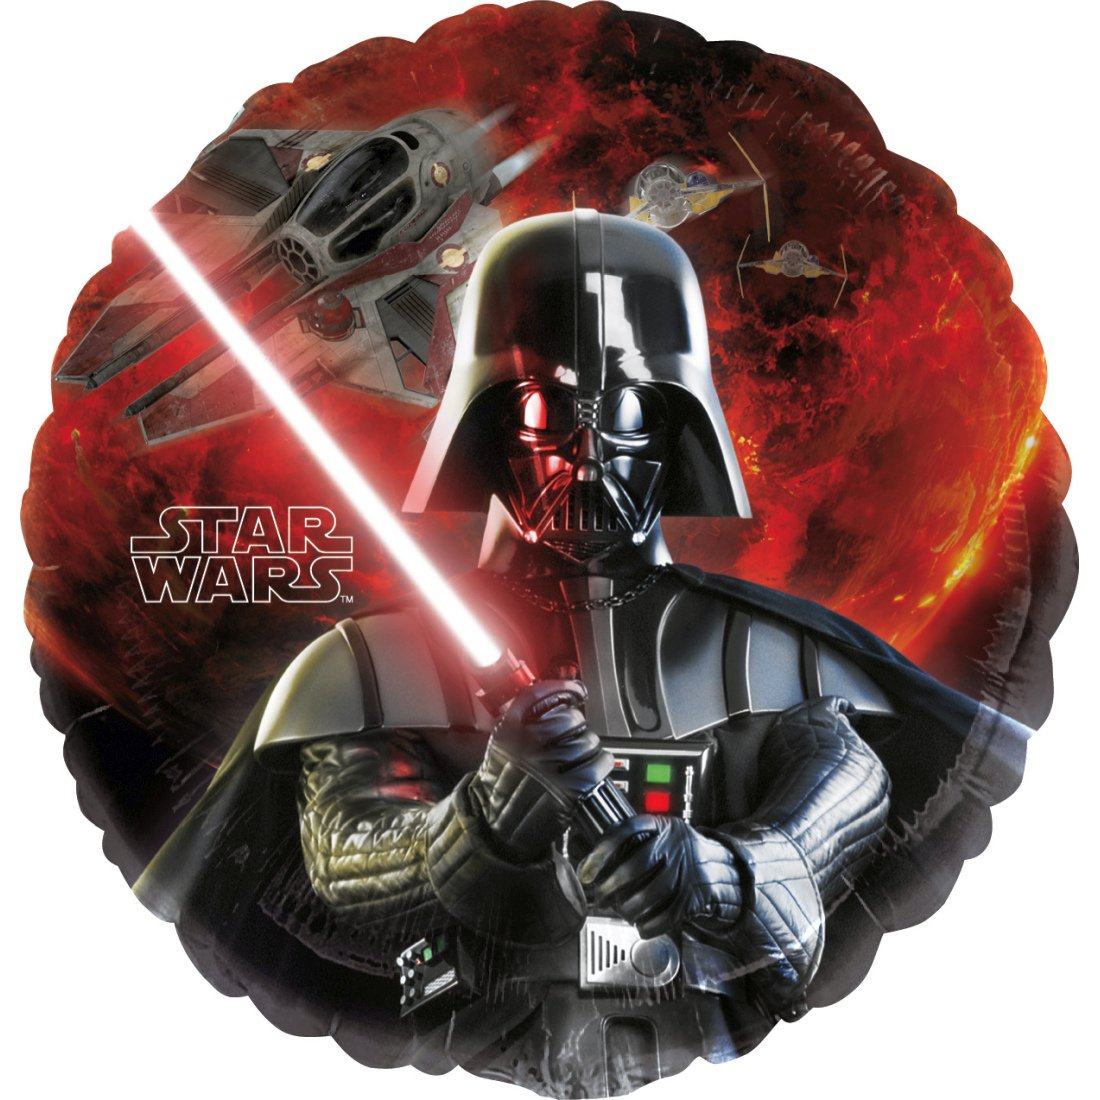 NET TOYS Globo de Helio Star Wars - 43 cm | Globo de Folio Darth ...